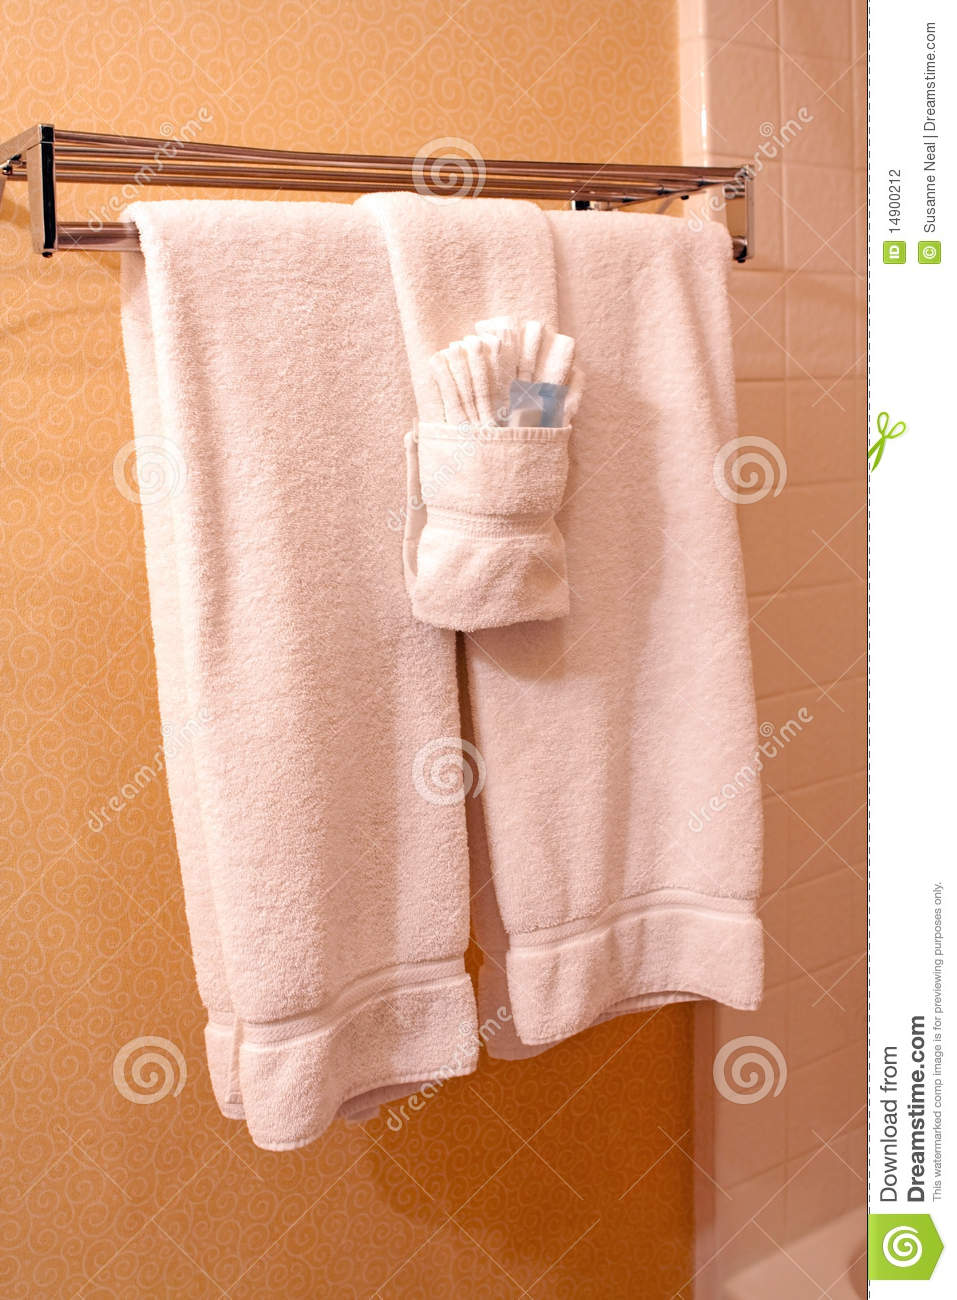 Folded hanging towel Washcloth White Towels On Towel Rack In Hotel Dreamstime White Towels On Towel Rack In Hotel Stock Photo Image Of Home